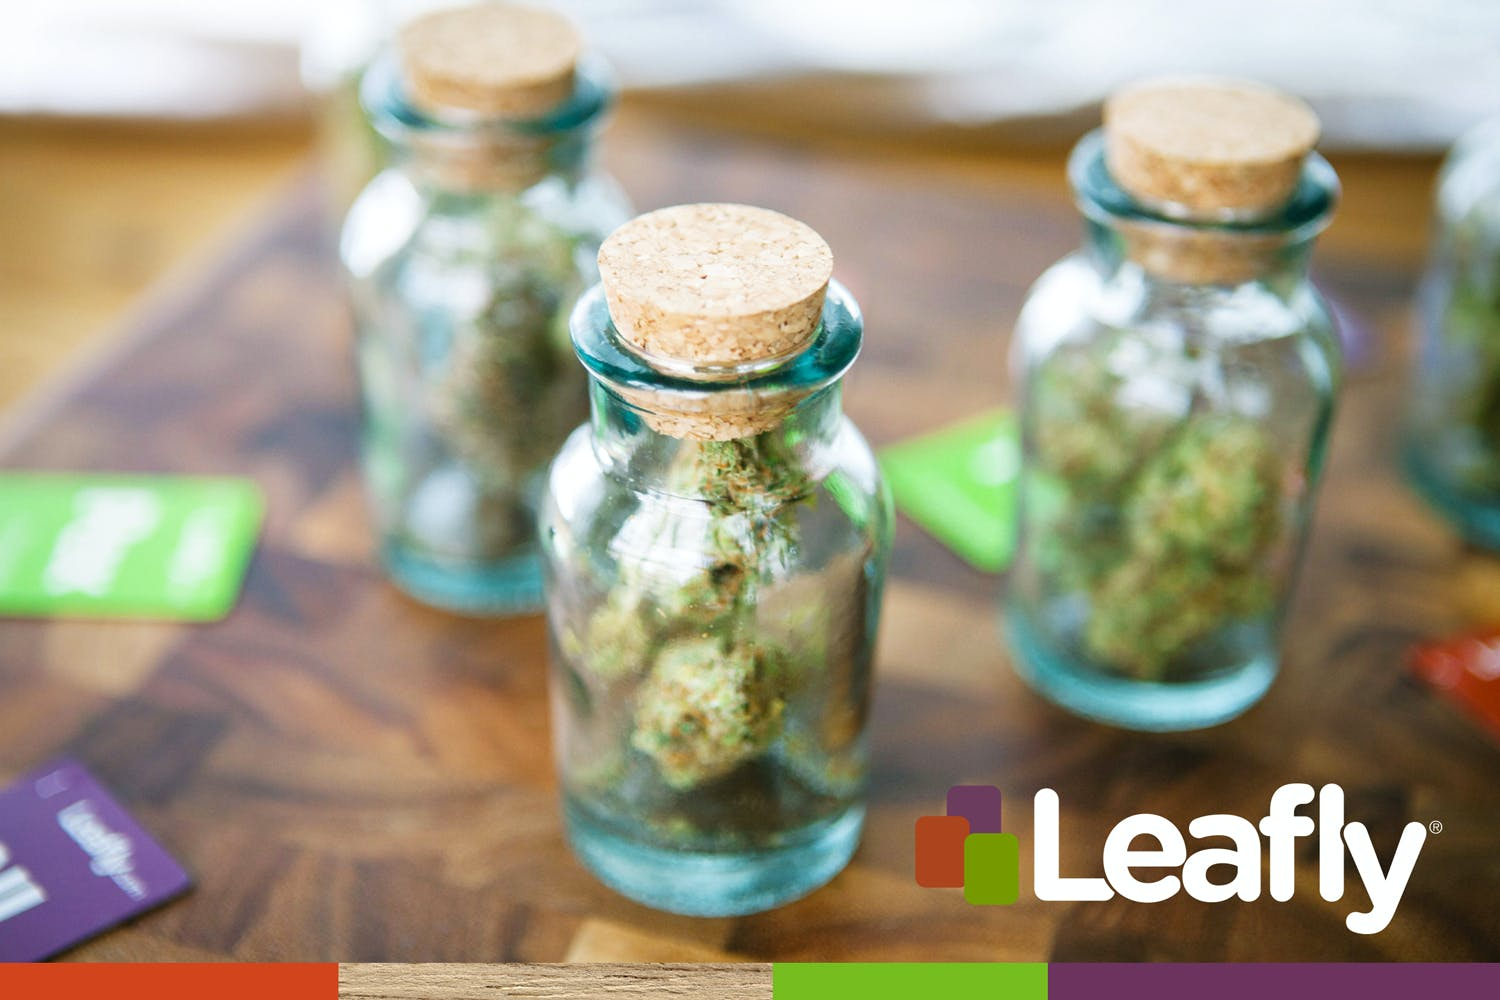 Leafly Buyers Guide Insert Header How do you explain your brain on drugs to someone whos never tried them? Visually of course.